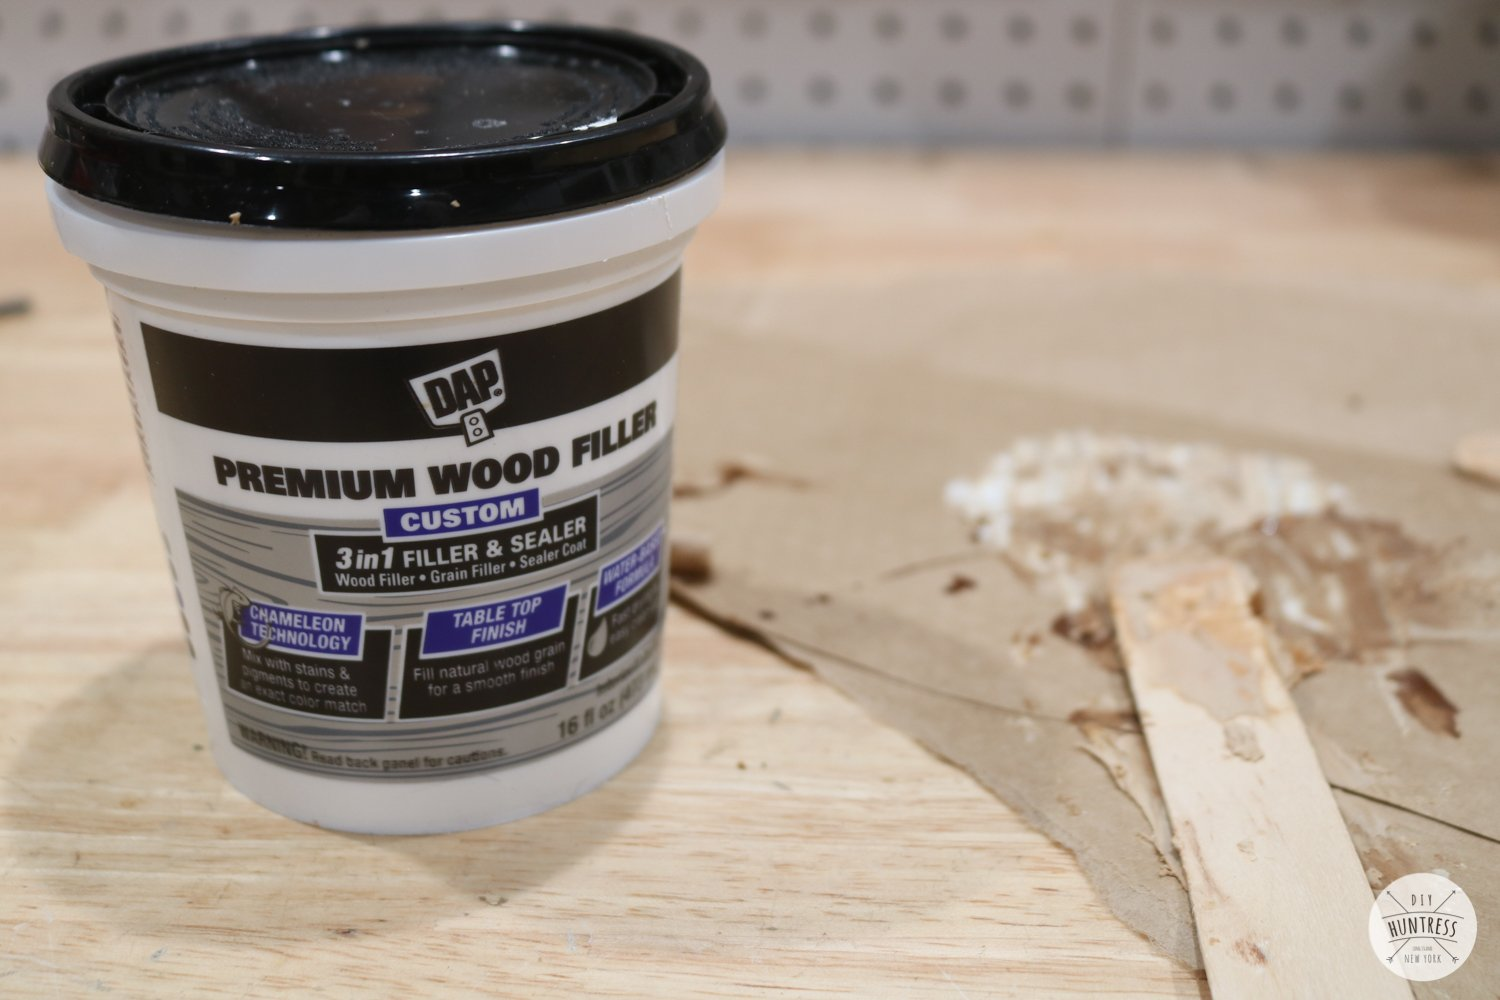 DAP Premium Wood Filler